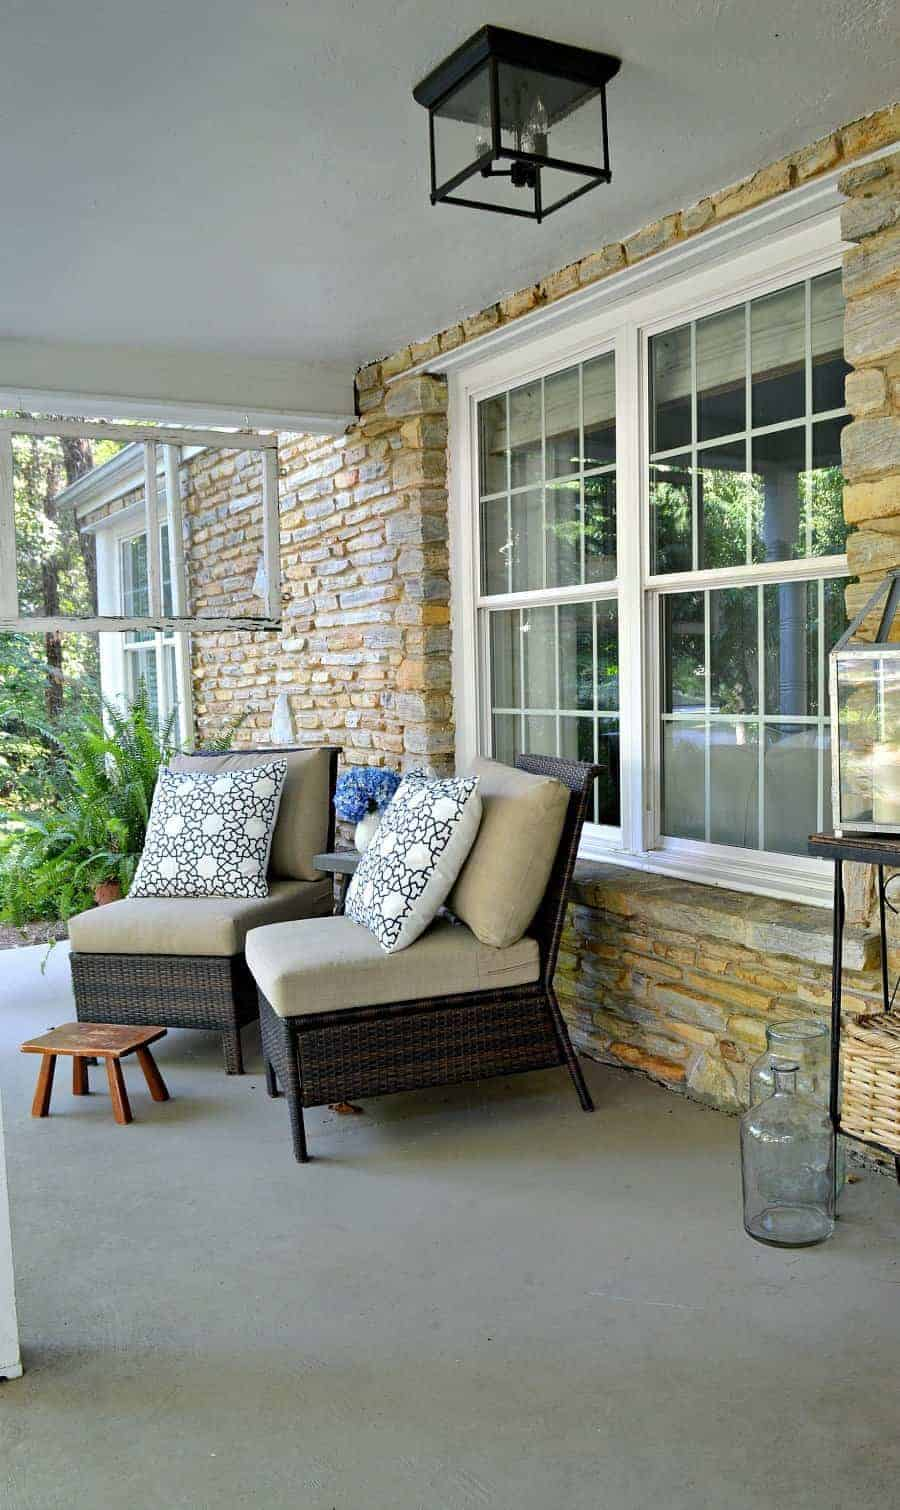 covered front porch with 2 wicker chairs and blue and white pillows